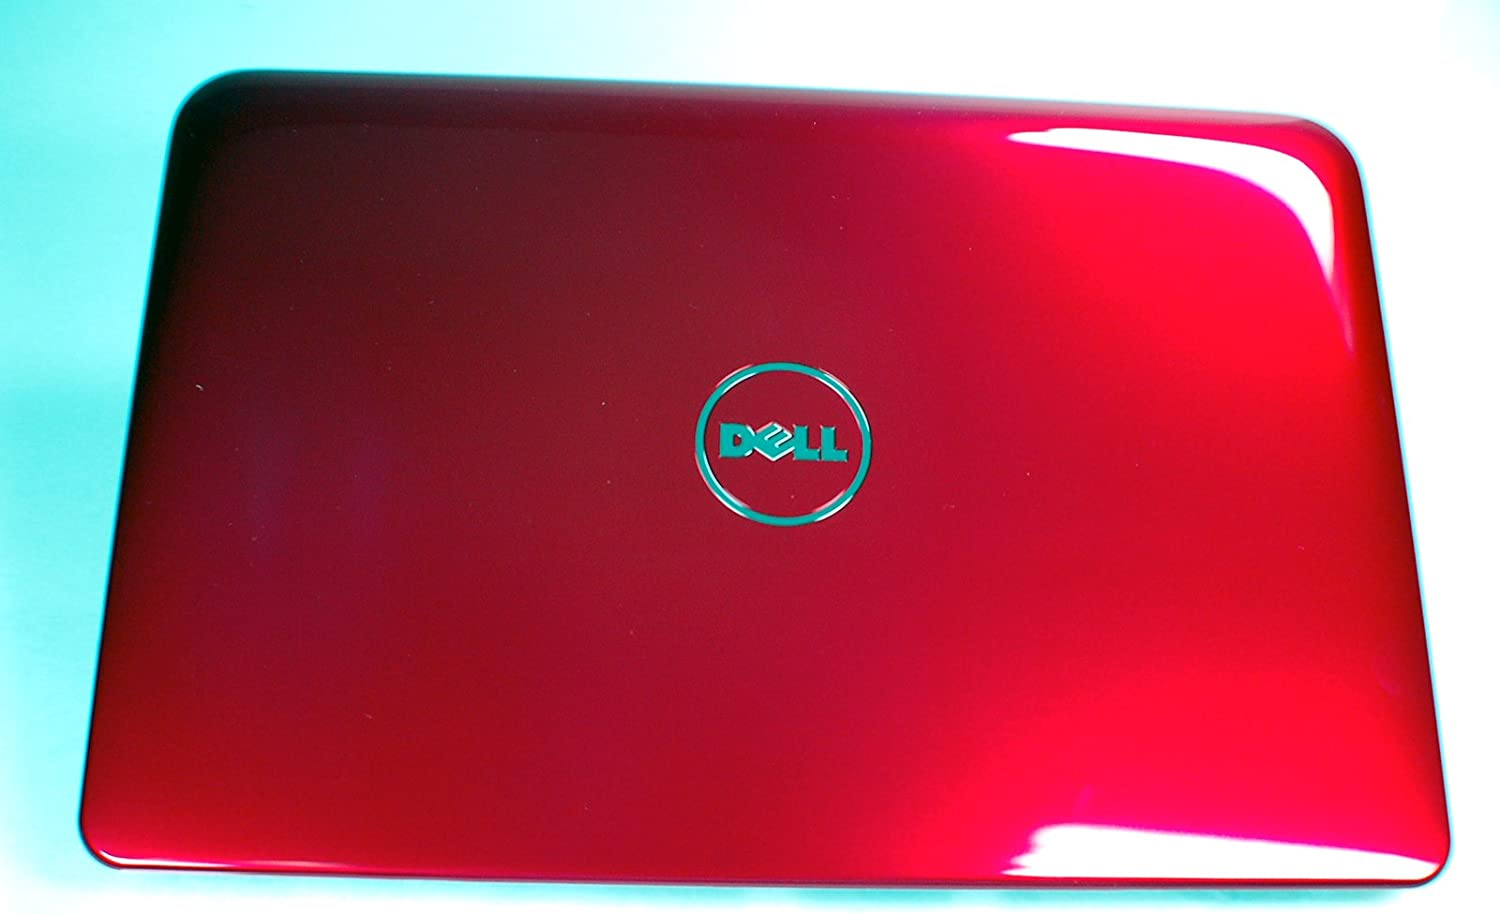 NEW Genuine OEM Dell Inspiron MINI 10 1012 Laptop 10.1 Inch Red LCD Visual Interactive Rear Back Cover Top Monitor Panel Case Lid Assembly W/Antenna 8453V Inspirion Insprion Housing Case Casing Enclosure